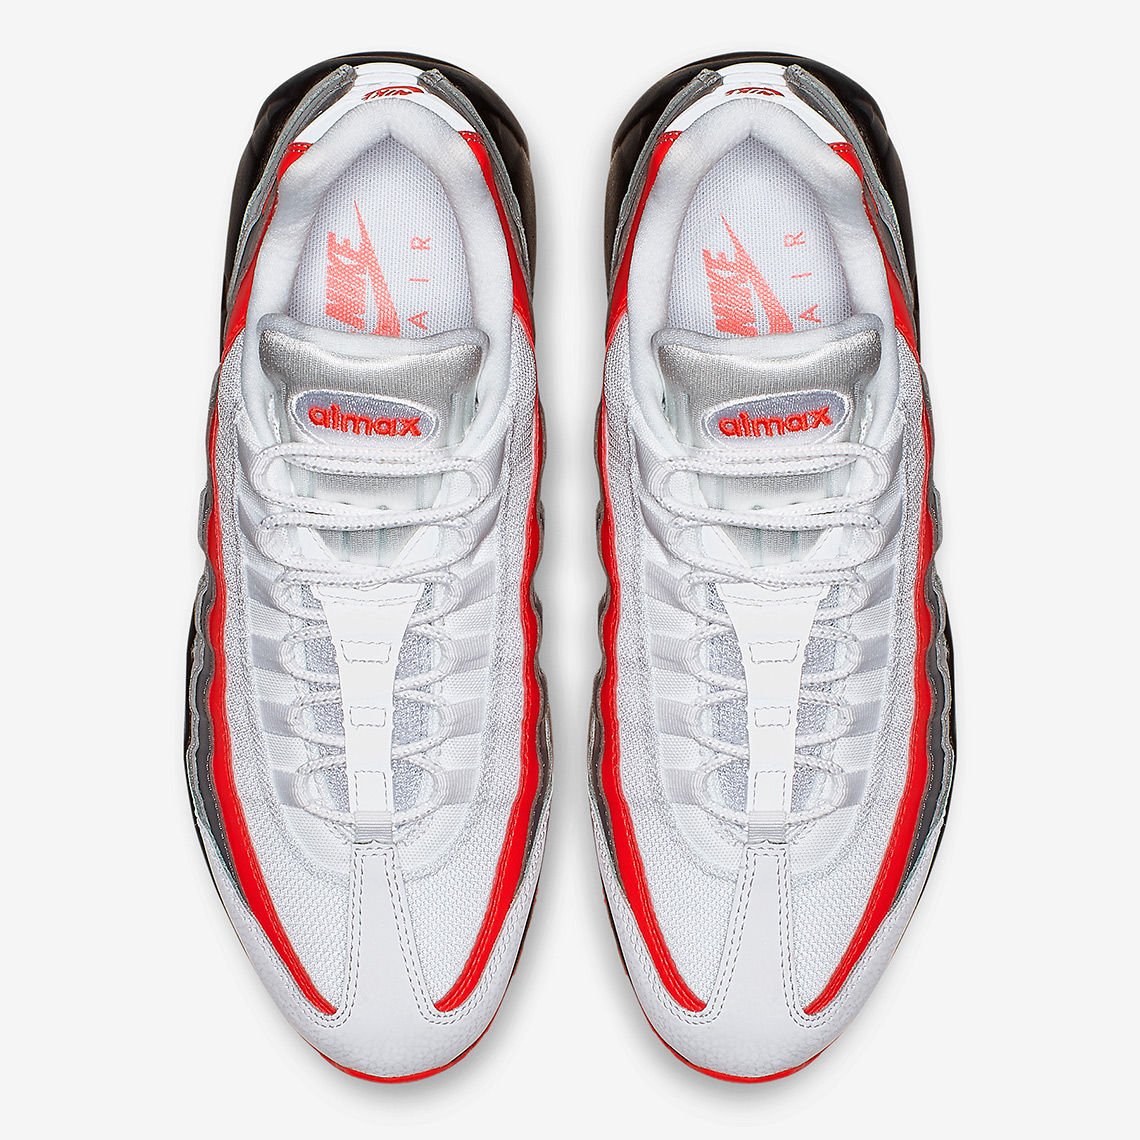 d4220811f0418 Nike Air Max 95 $160. Color: White/Bright Crimson-Black-Pure Platinum Style  Code: 749766-112. Where to Buy. Eastbay Available. Advertisement.  Advertisement